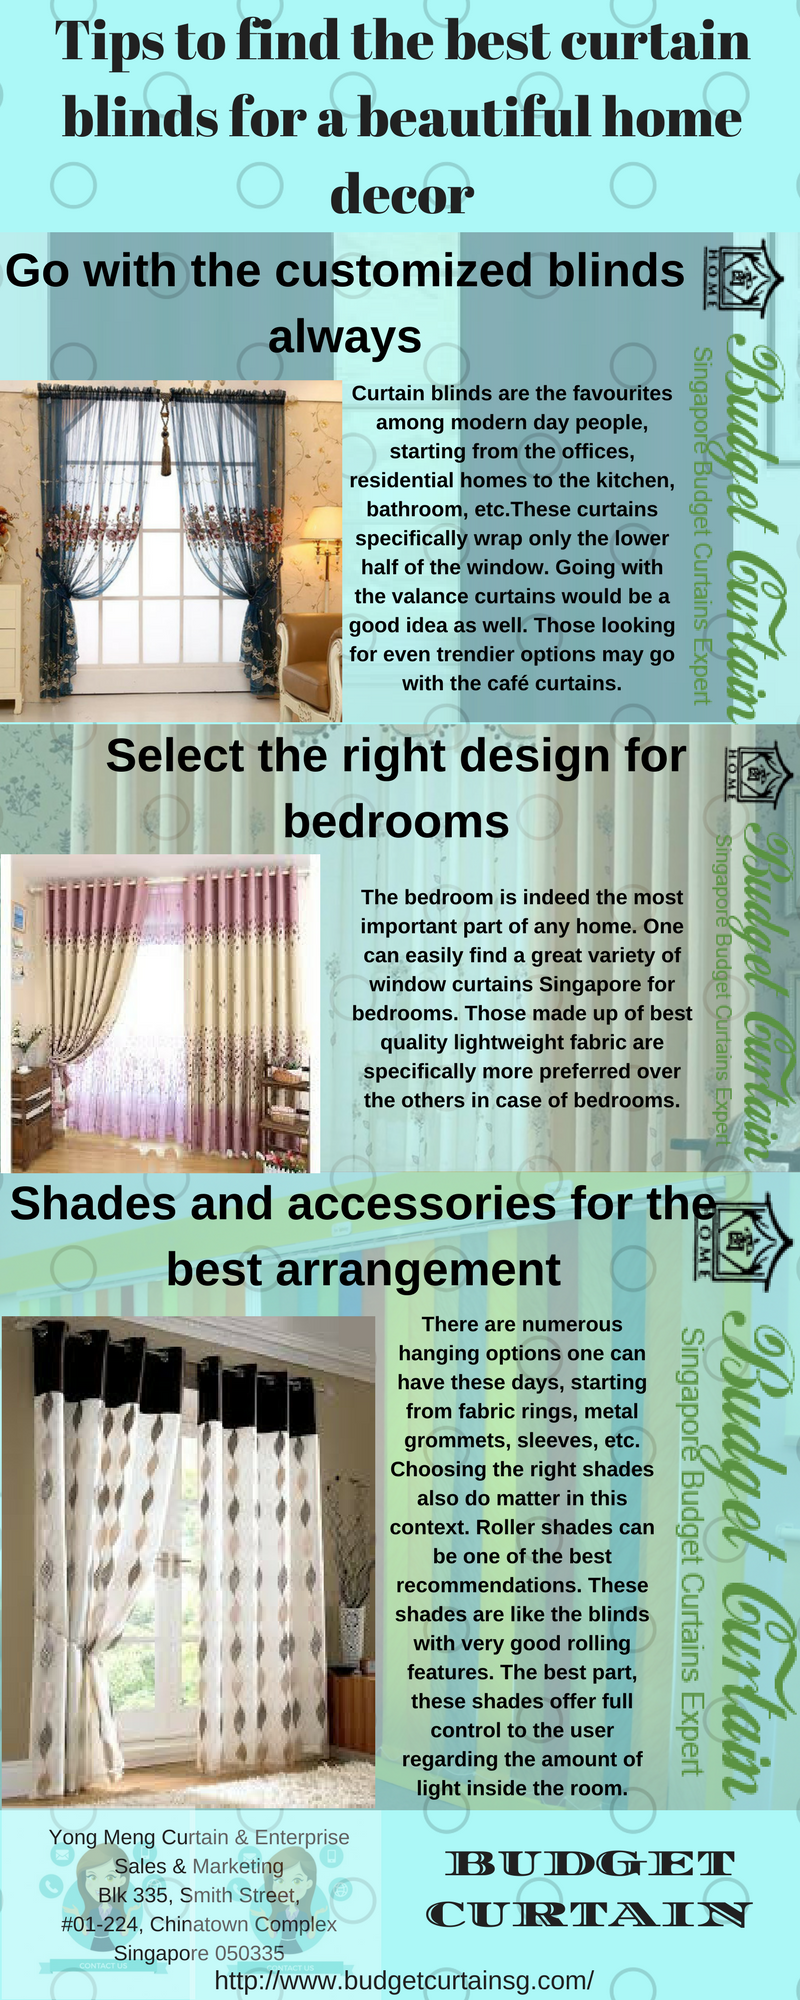 Get The Best Curtain Blinds For A Beautiful Home Decor At Prices In Singapore